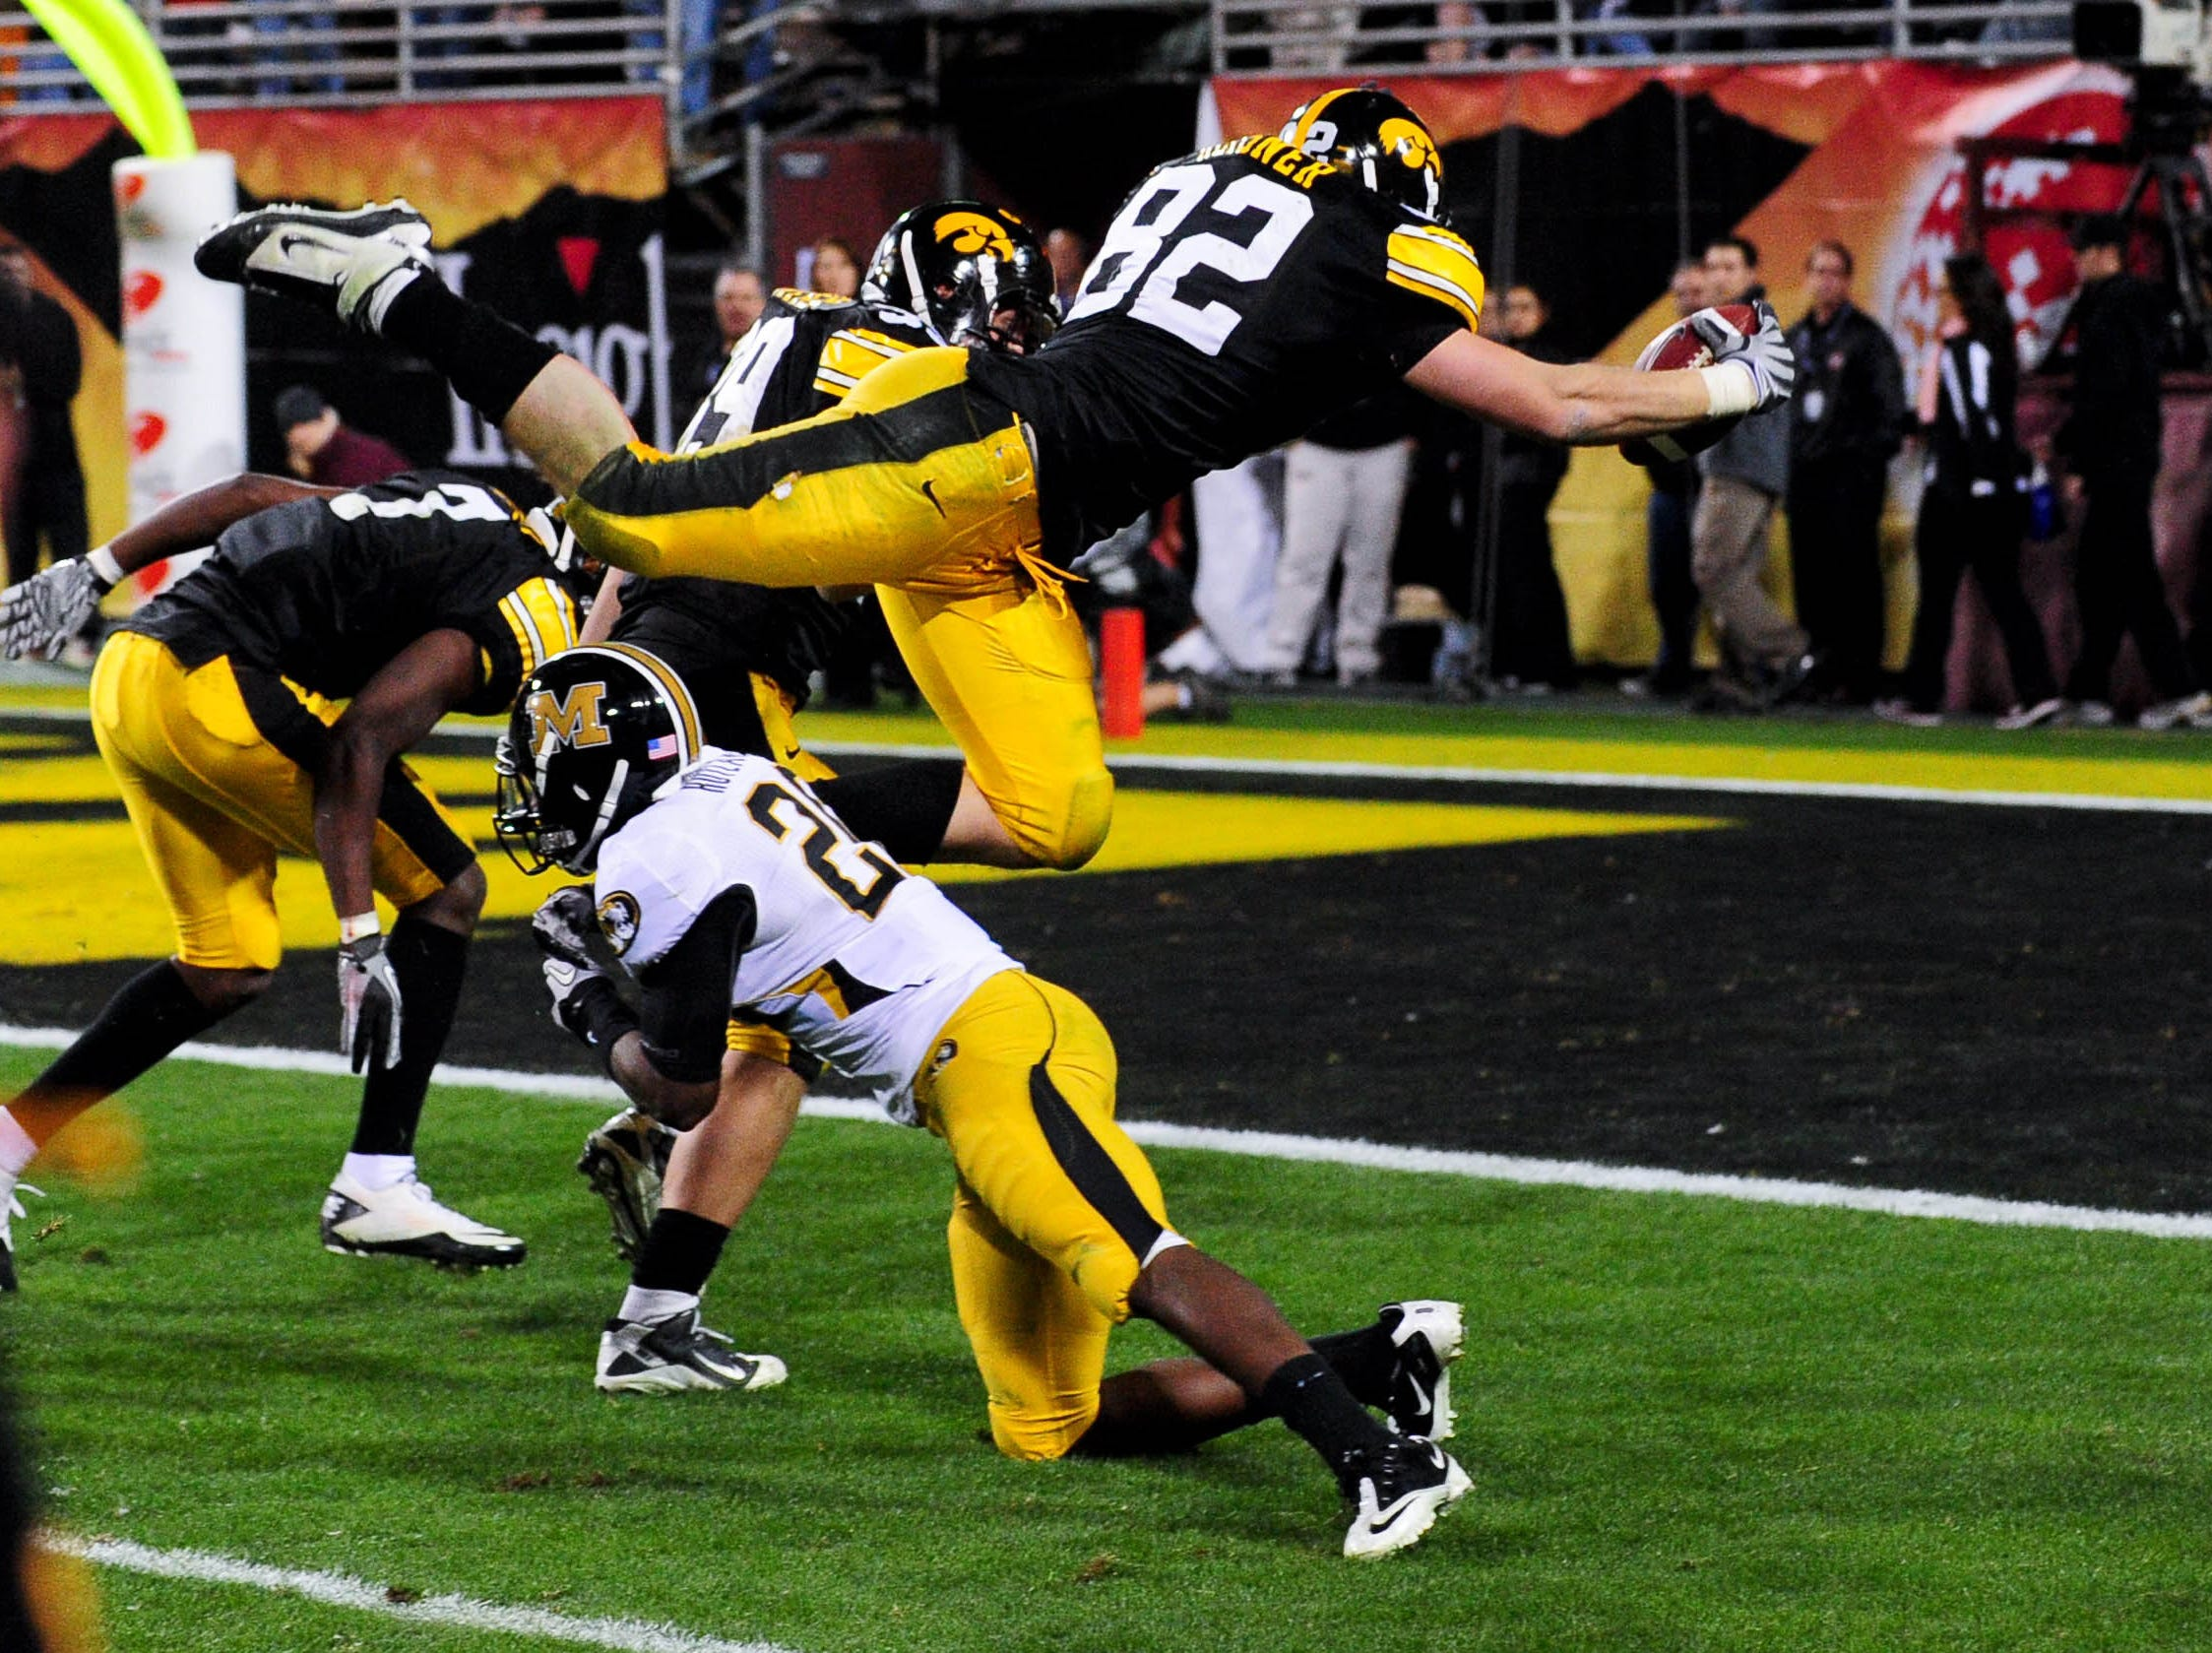 Dec. 28, 2010; Tempe, AZ, USA; Iowa Hawkeyes tight end Allen Reisner (82) dives towards the end zone in the closing seconds of the game against the Missouri Tigers during the 2010 Insight Bowl at Sun Devil Stadium. The Hawkeyes beat the Tigers 27-24.  Mandatory Credit: Matt Kartozian-USA TODAY Sports